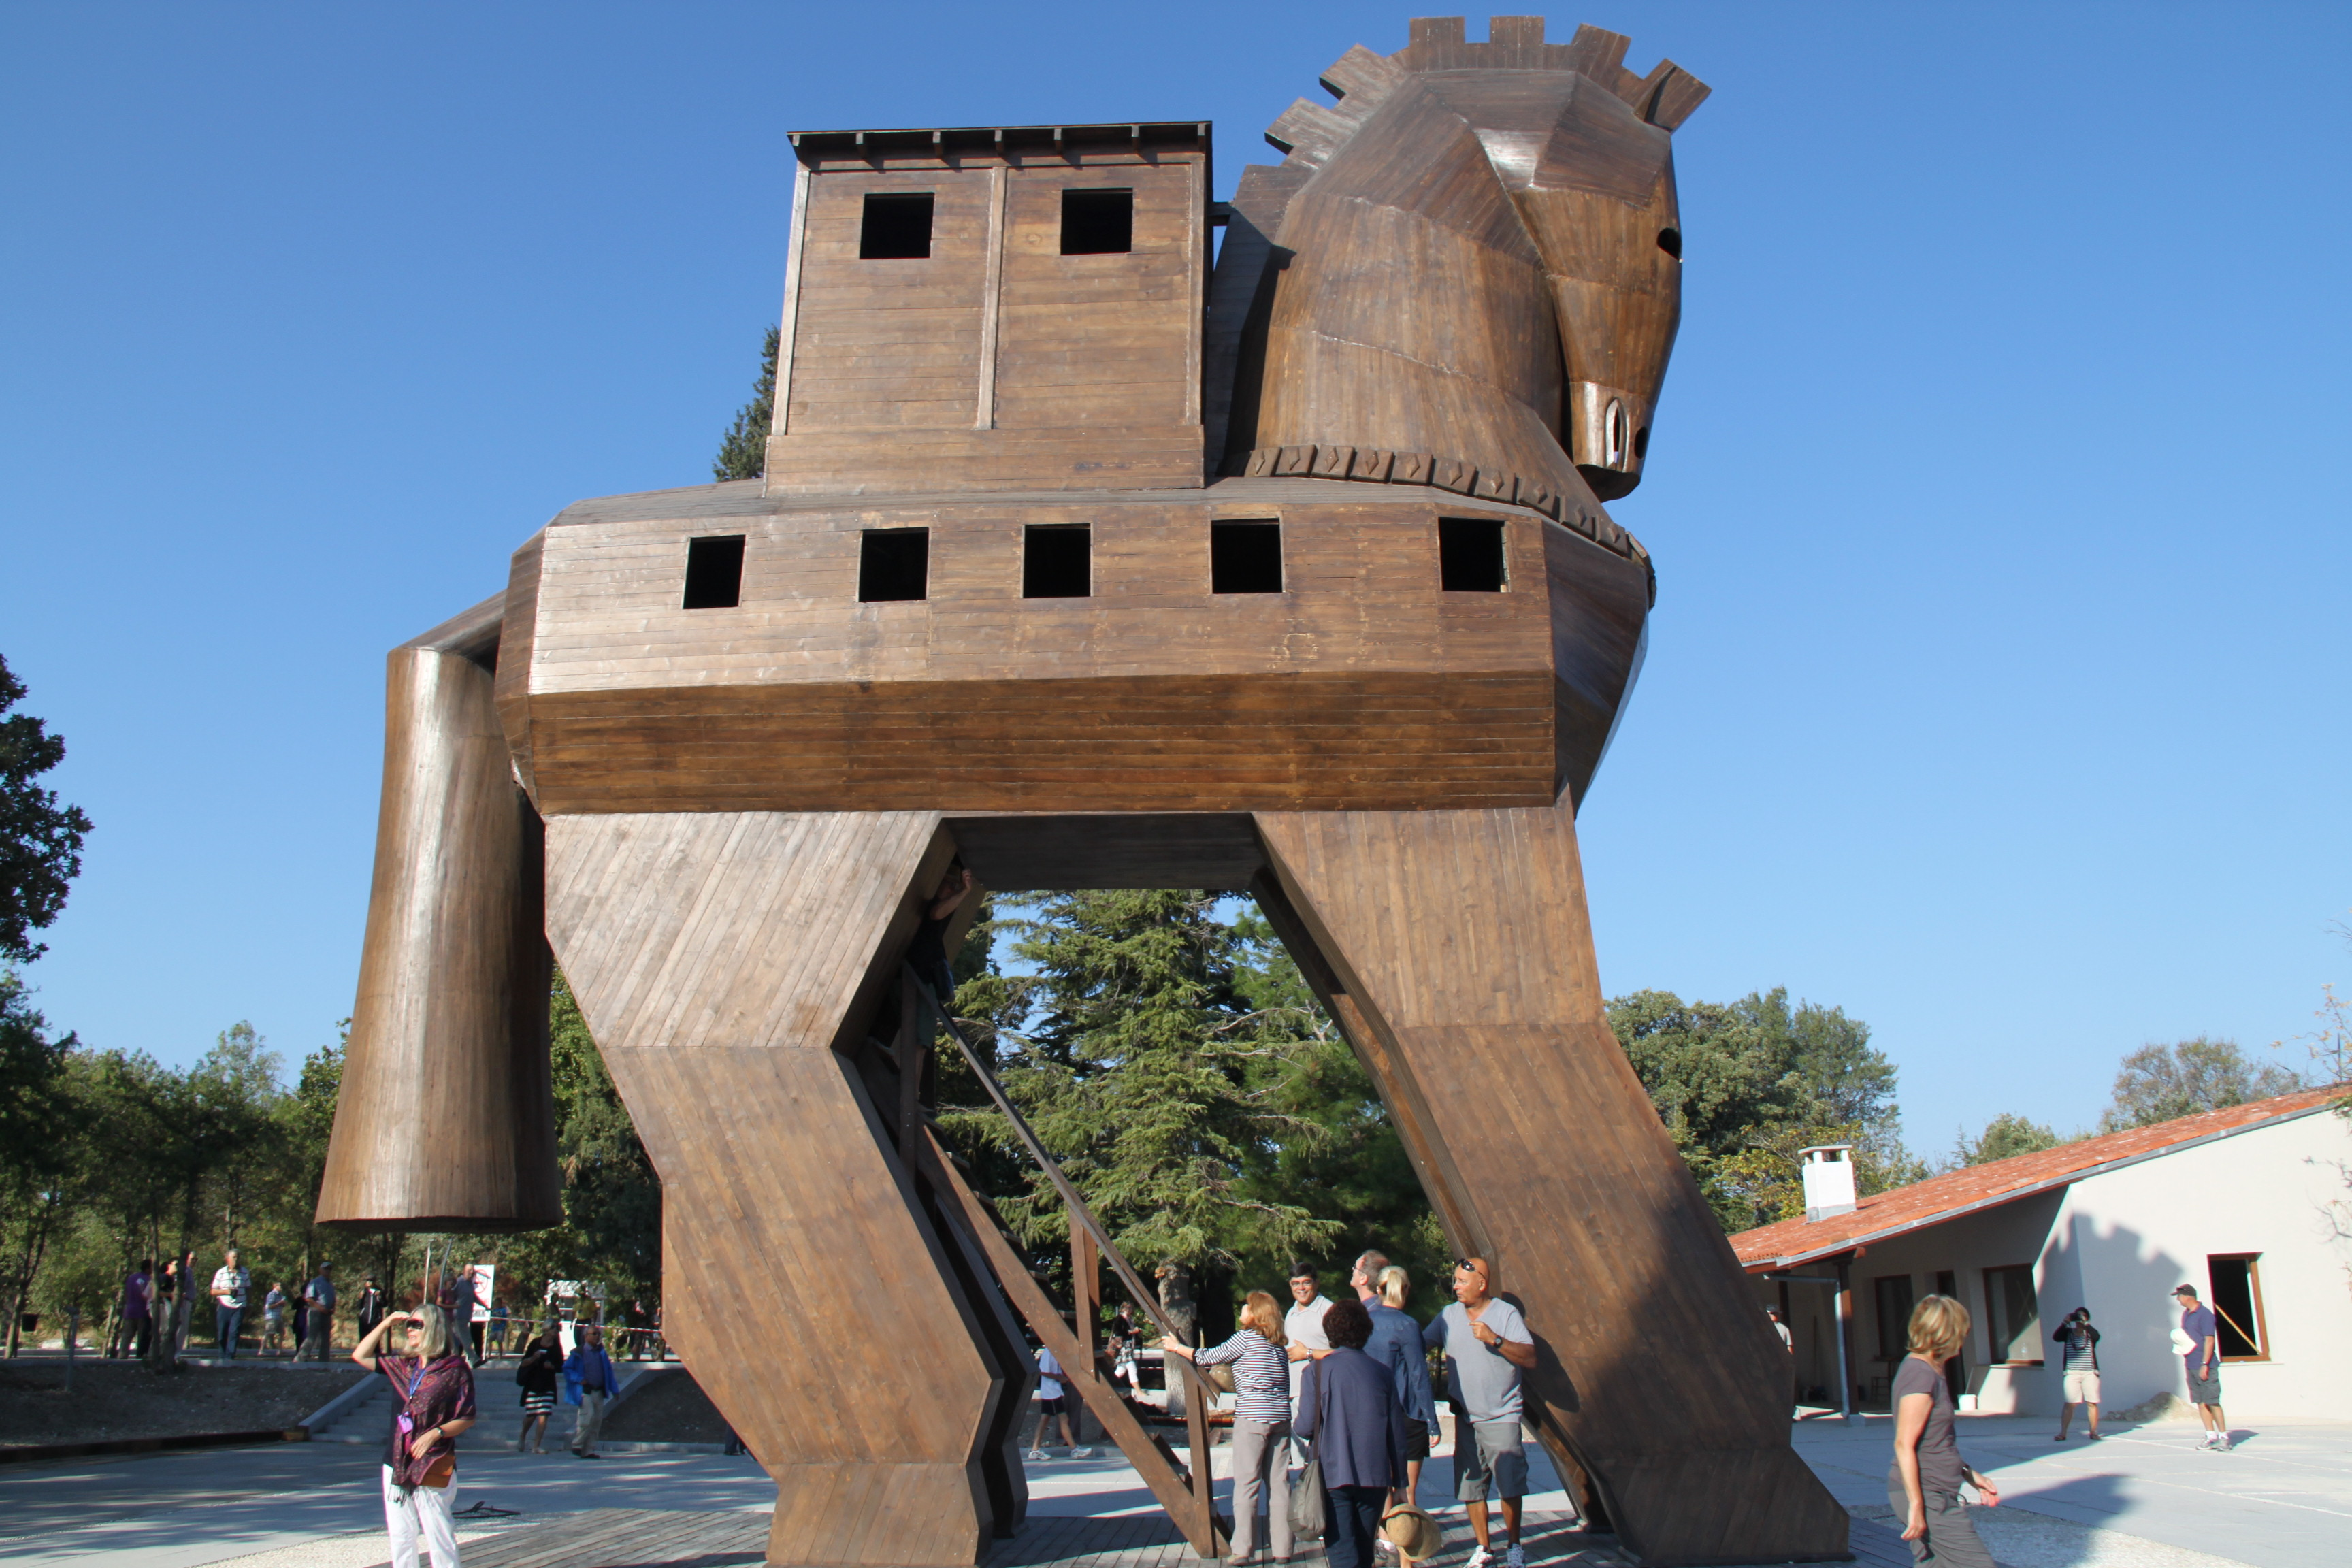 trojan horse now and then essay Student's name: instructor's name: subject: essay, business date: topic: ties that constrict: english as a trojan horse trojan horse, a program that is apparent.